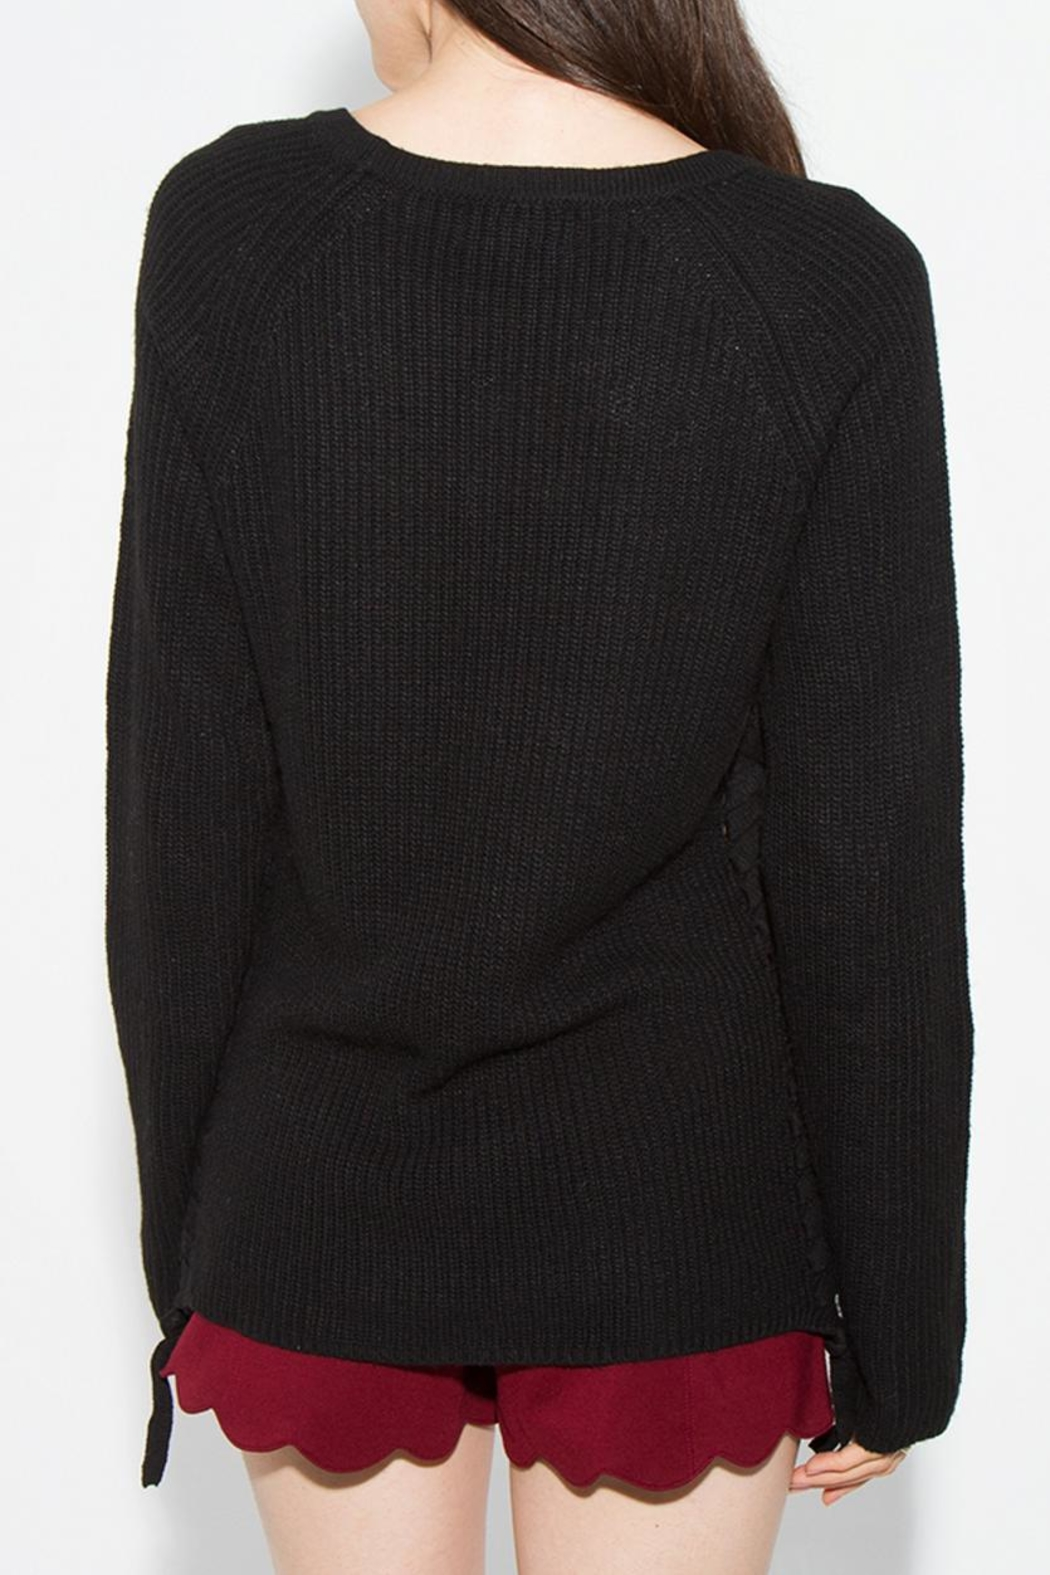 Sugar Lips Braided Side Sweater - Side Cropped Image